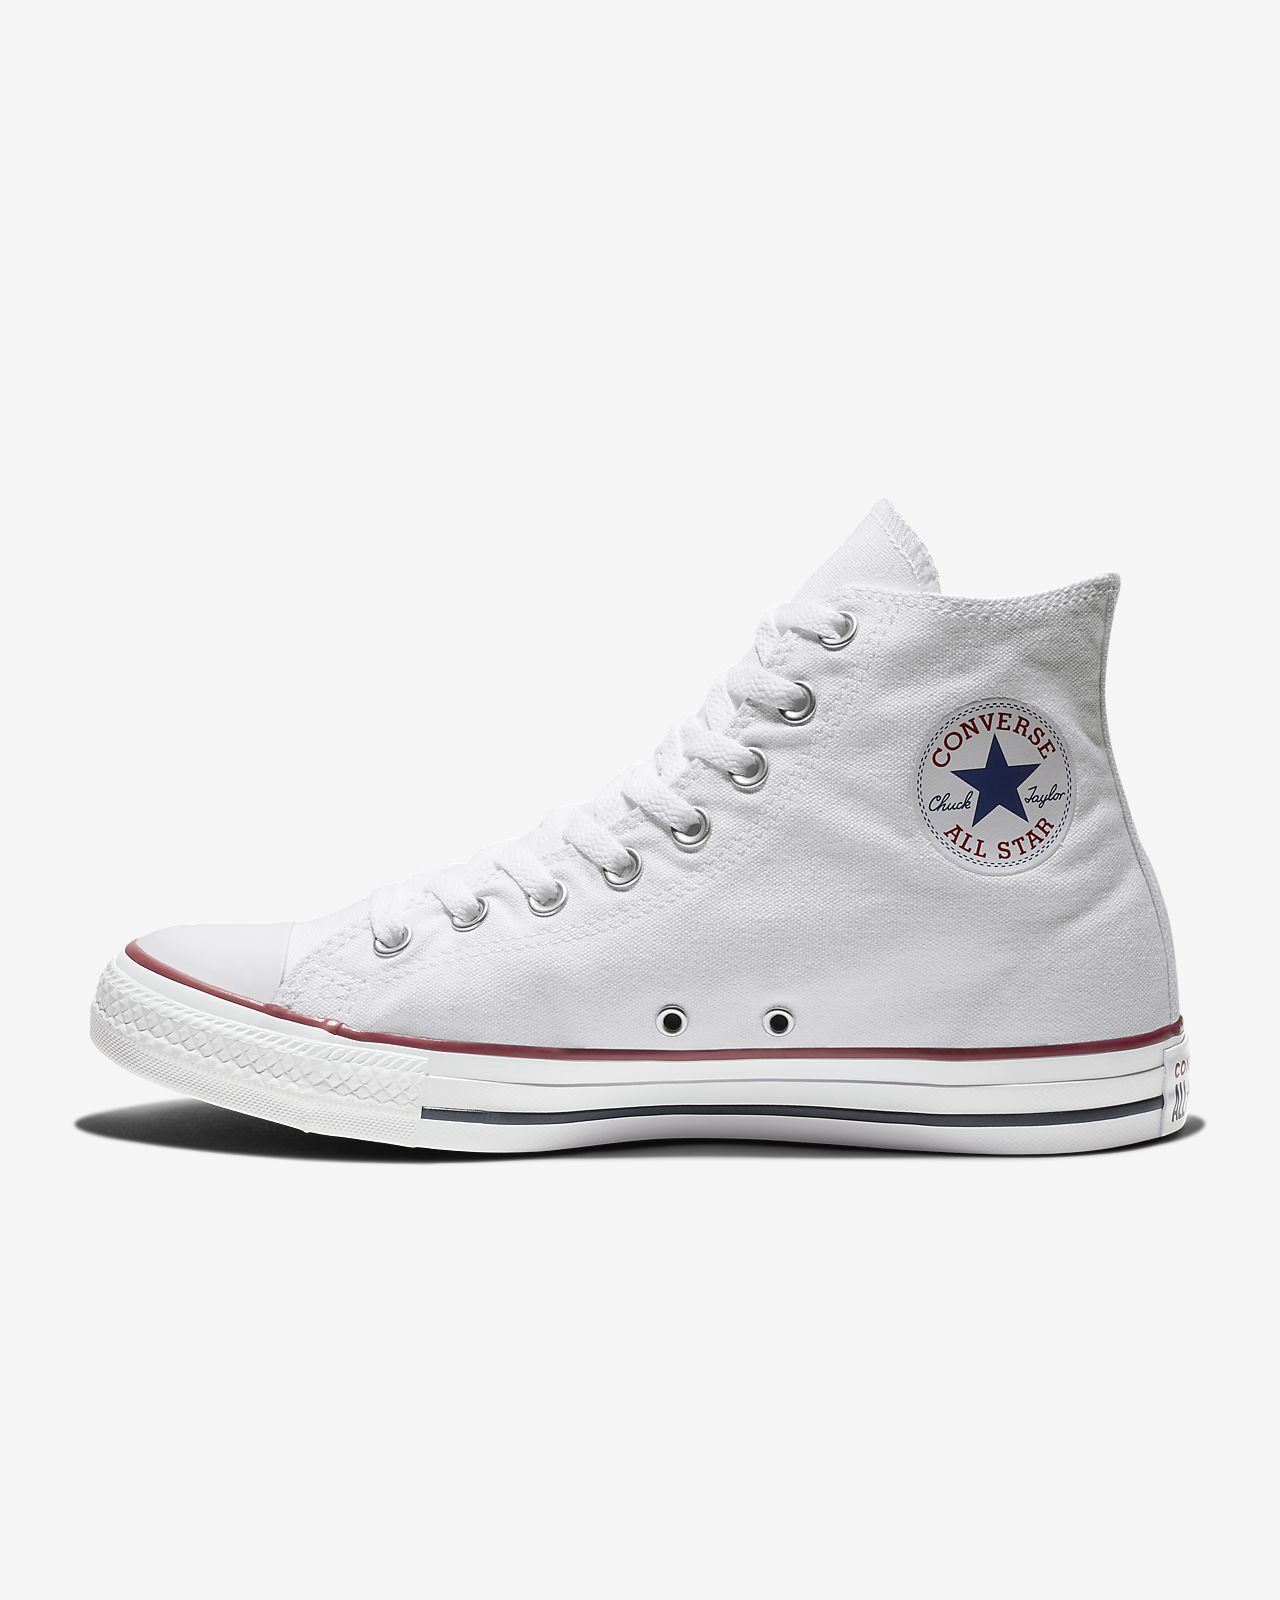 new style 00791 0858f Converse Chuck Taylor All Star High Top Unisex Shoe